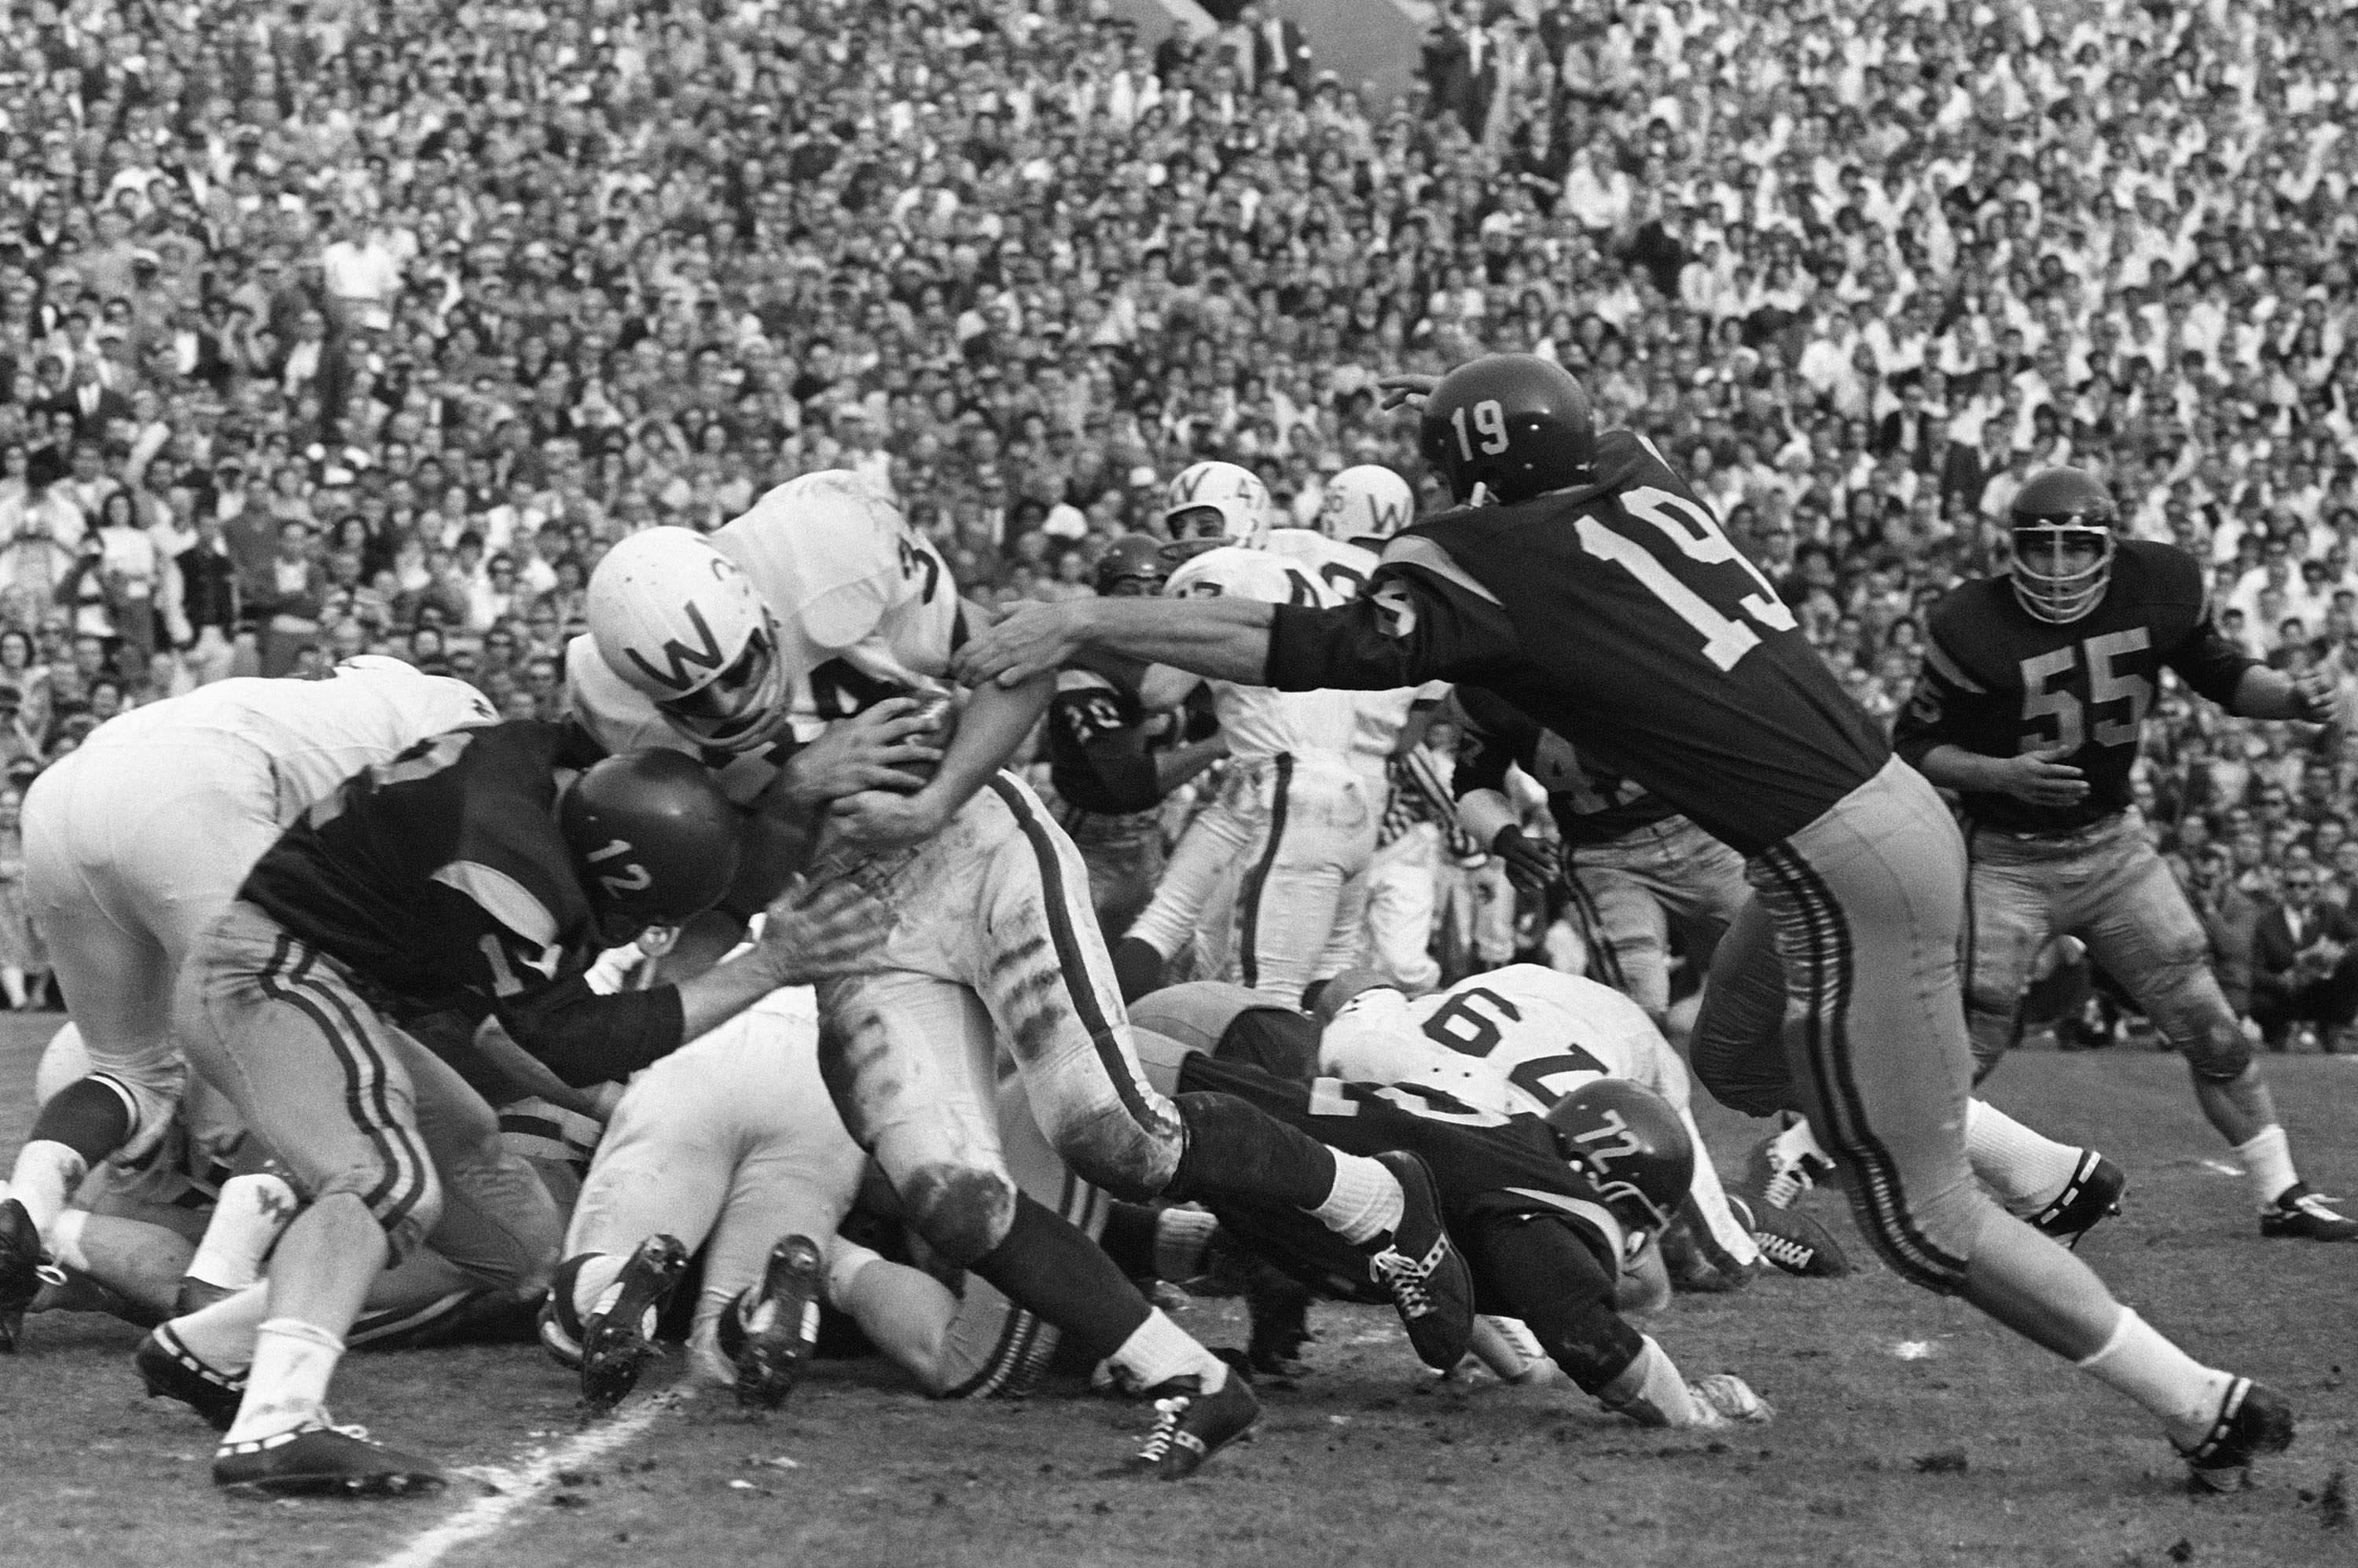 Wisconsin fullback Ralph Kurek (34), smashes off tackle into the end zone to score his teams first touchdown against Southern California while going down to a 42-37 defeat at the Rose Bowl, Jan. 2, 1963, at  Pasadena CA. Kurek takes hand-off from quarterback Ron VanderKelen, and then hit at goal line by USC quarterback Pete Beathard (12) as end Hal Bedsole (19) lunges for his bottom, he shoves Beathard back and scores. (Associated Press)